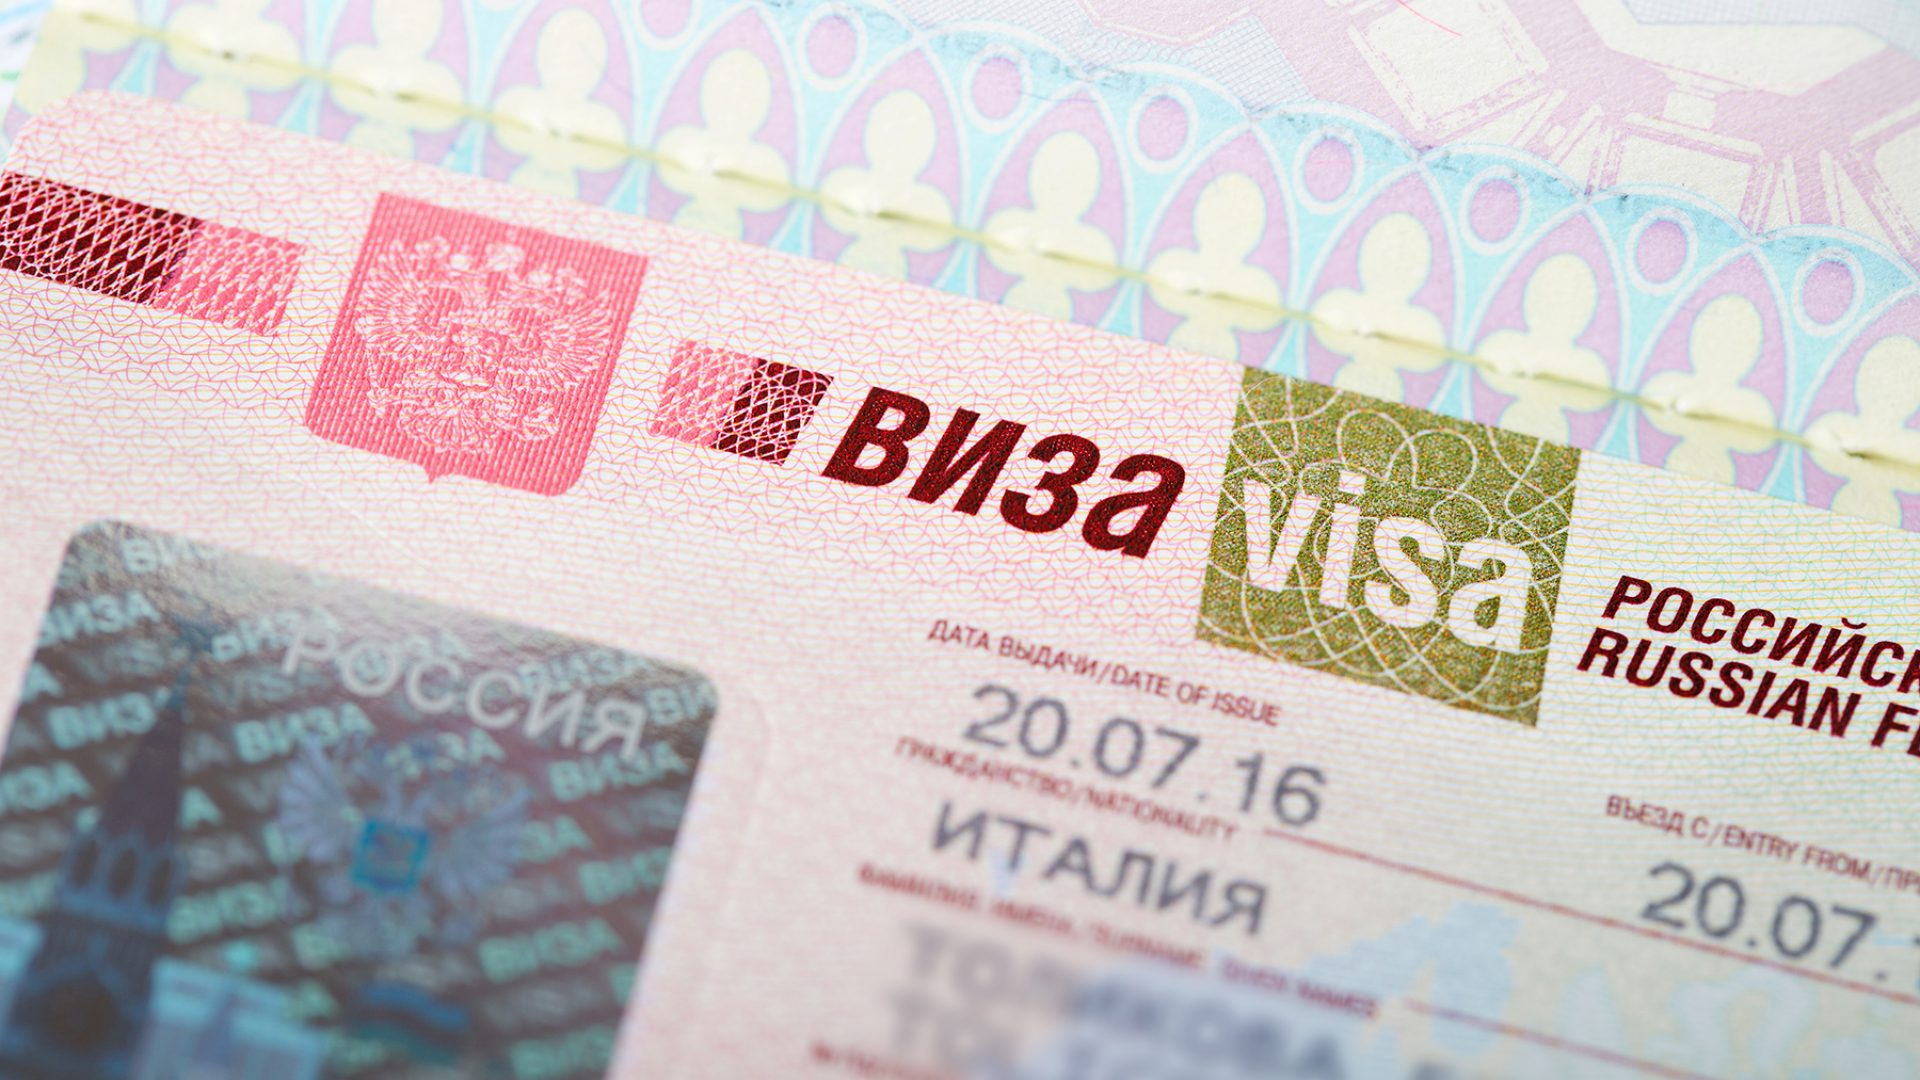 Visas and immigration in Russia